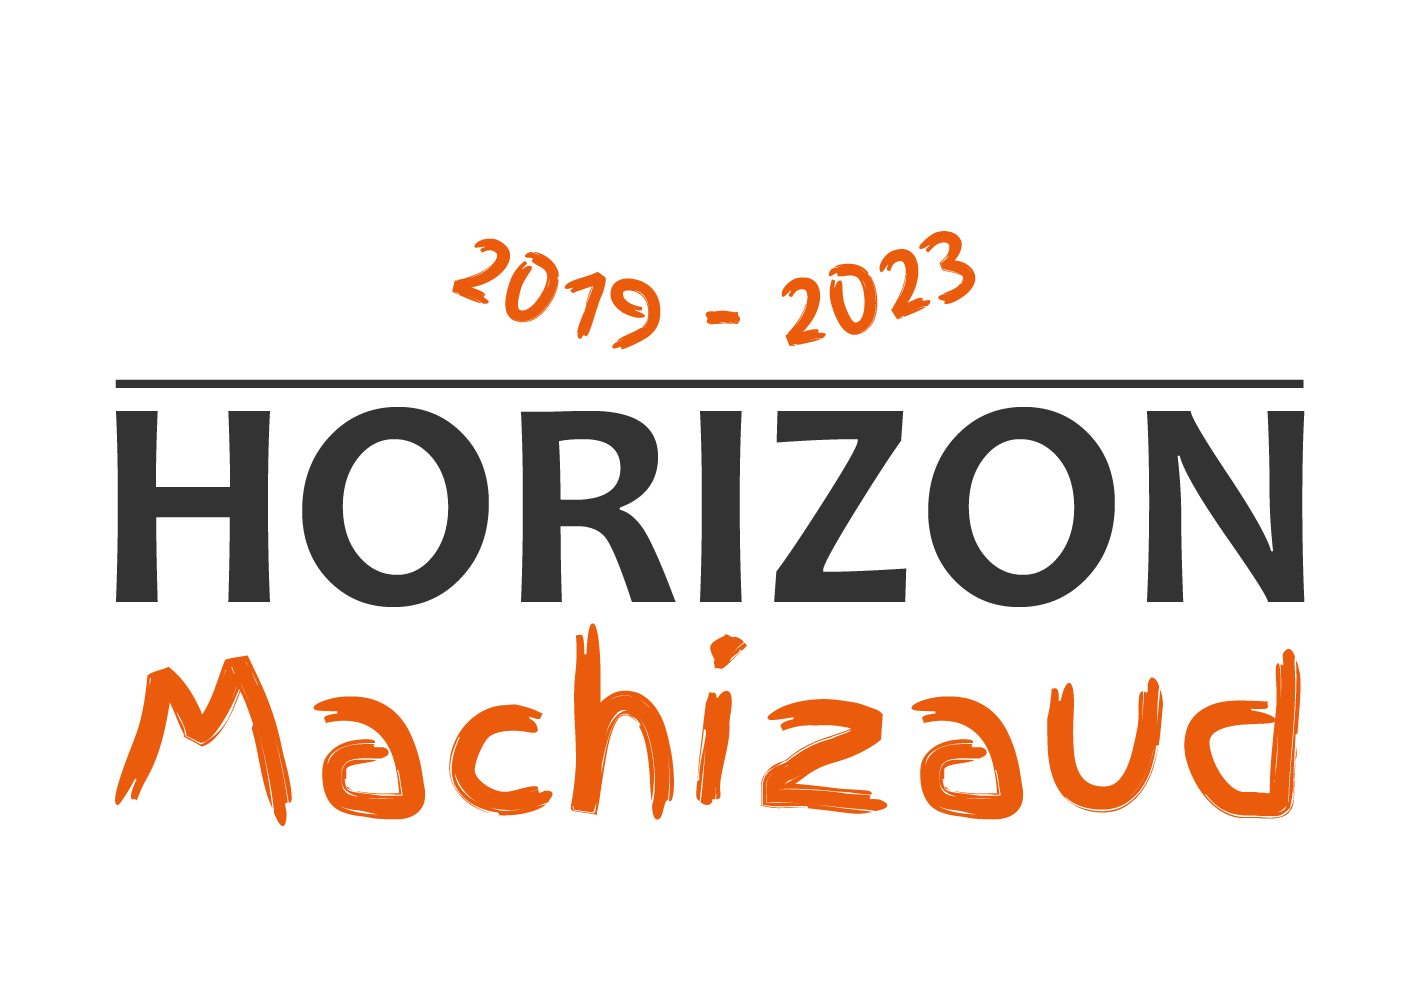 HORIZON MACHIZAUD